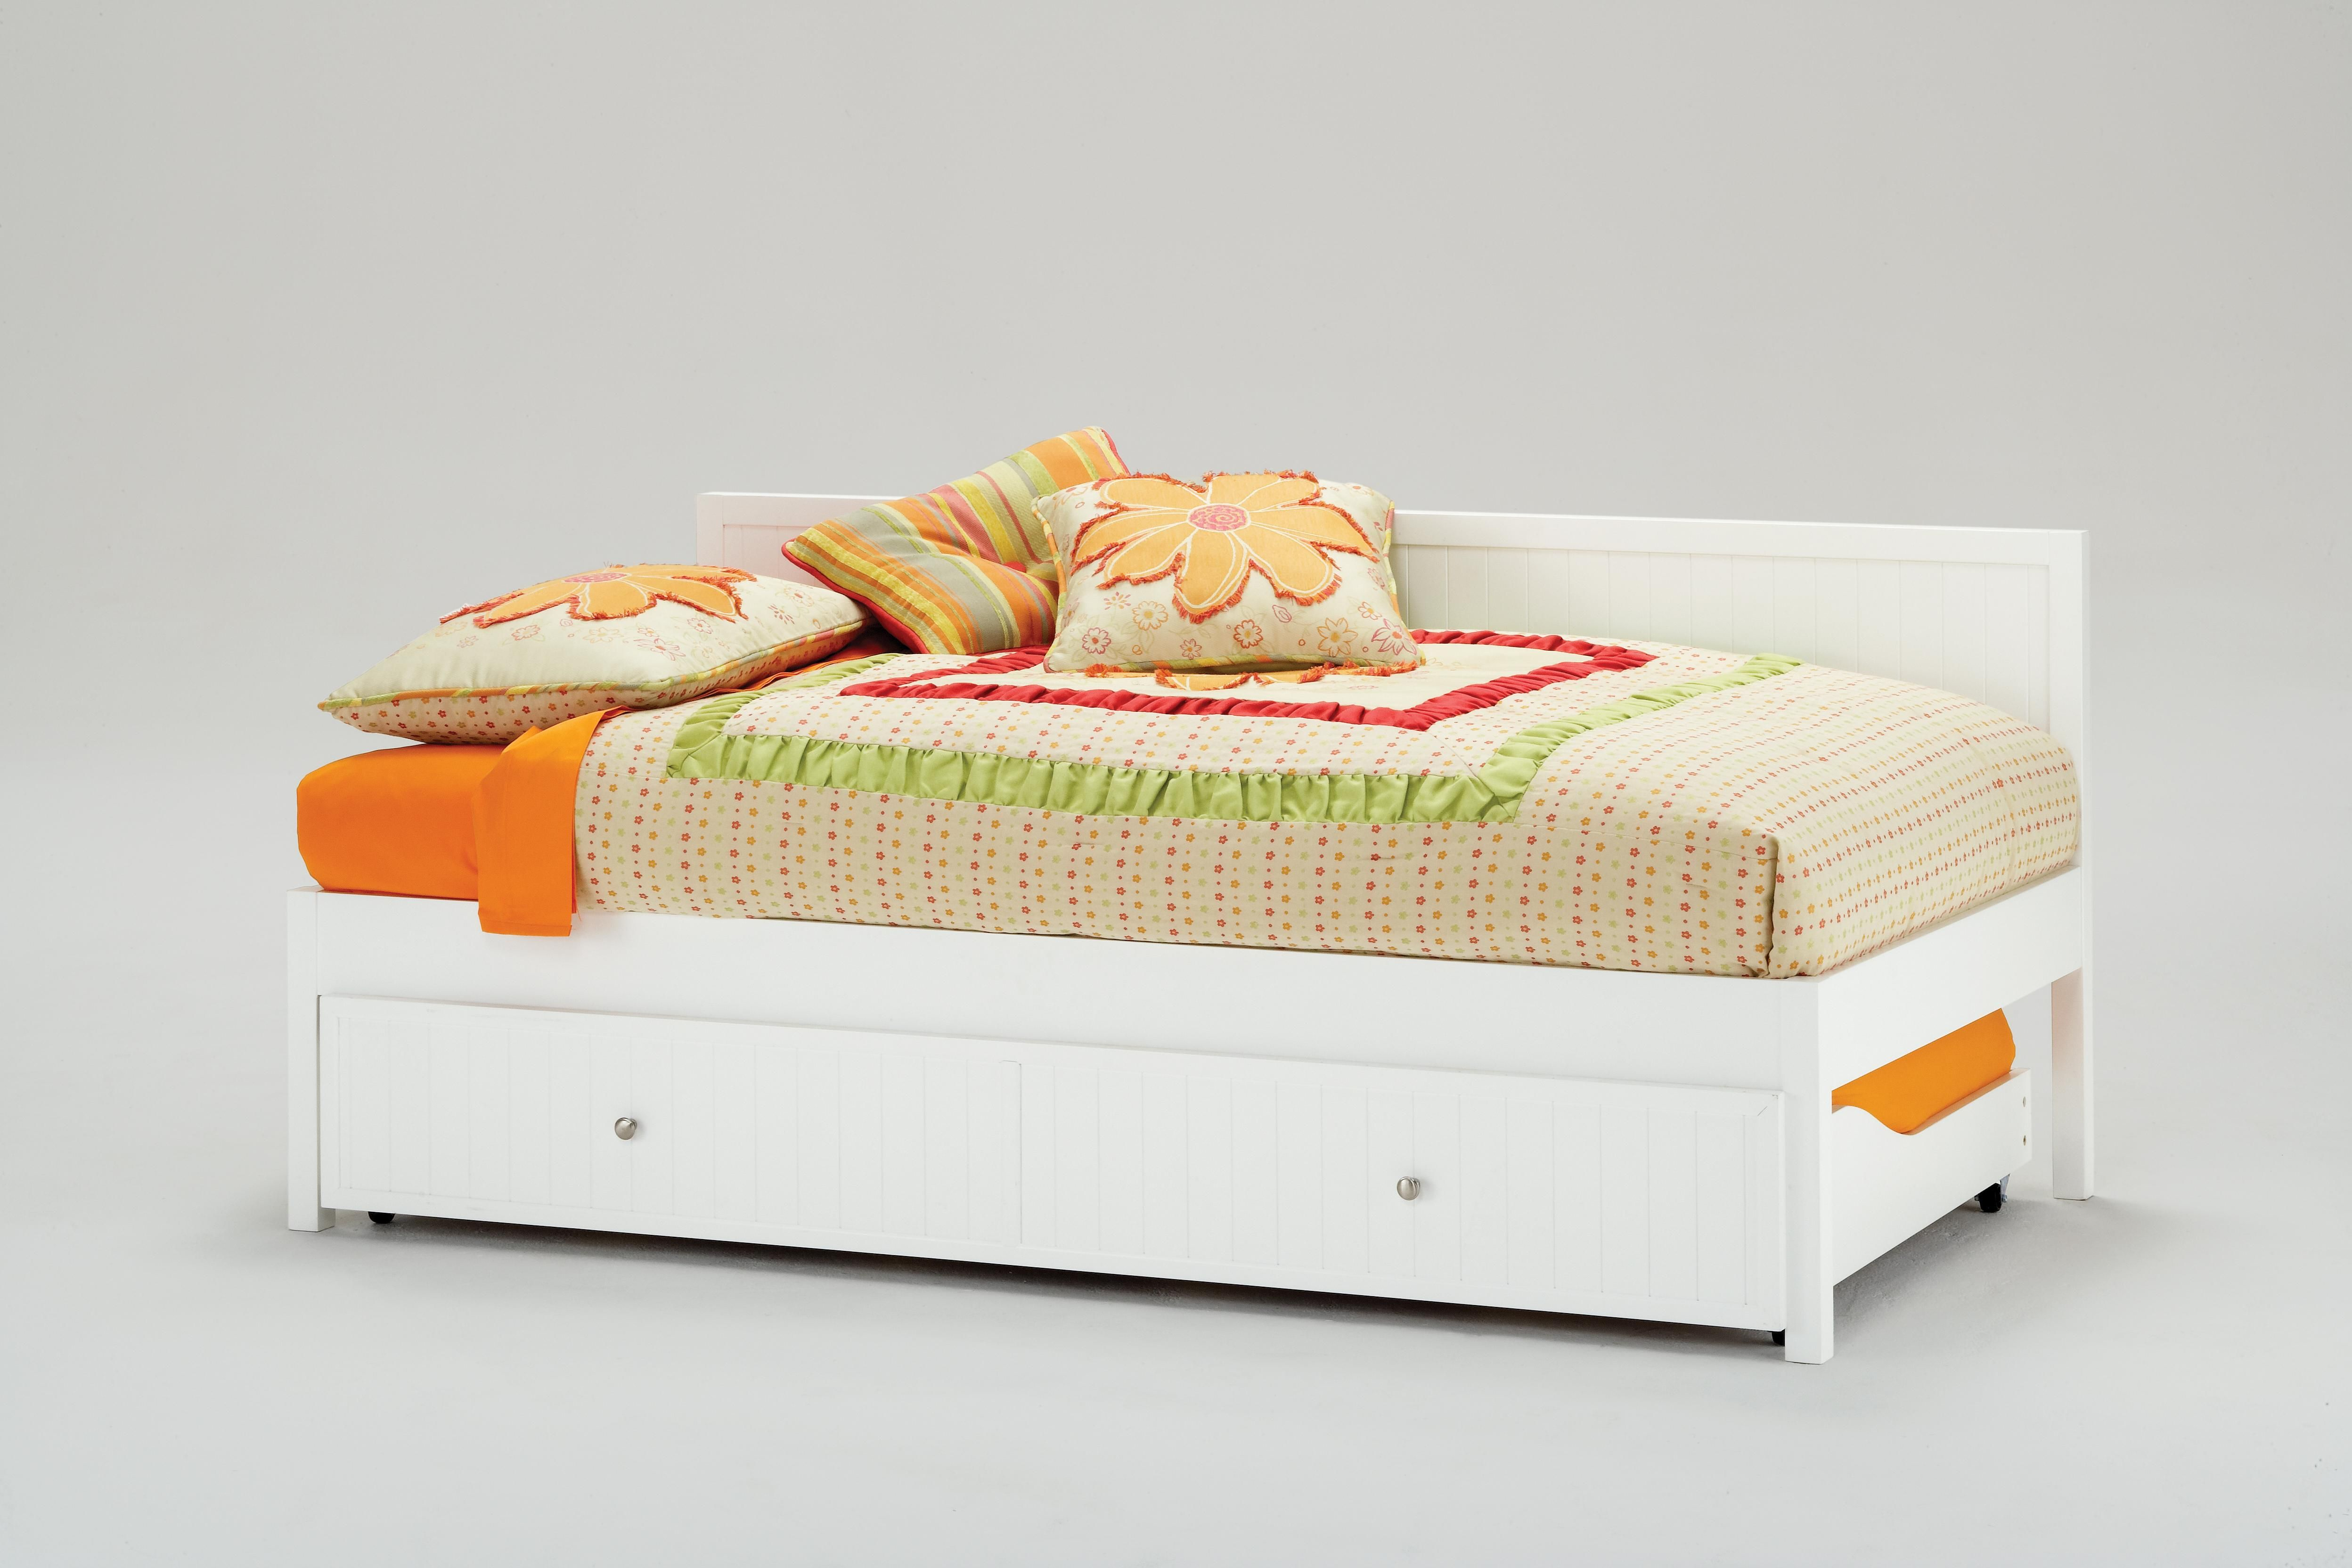 Modern Bed Ideas With Pop Up Trundle Bed: White Wooden Daybed With ...